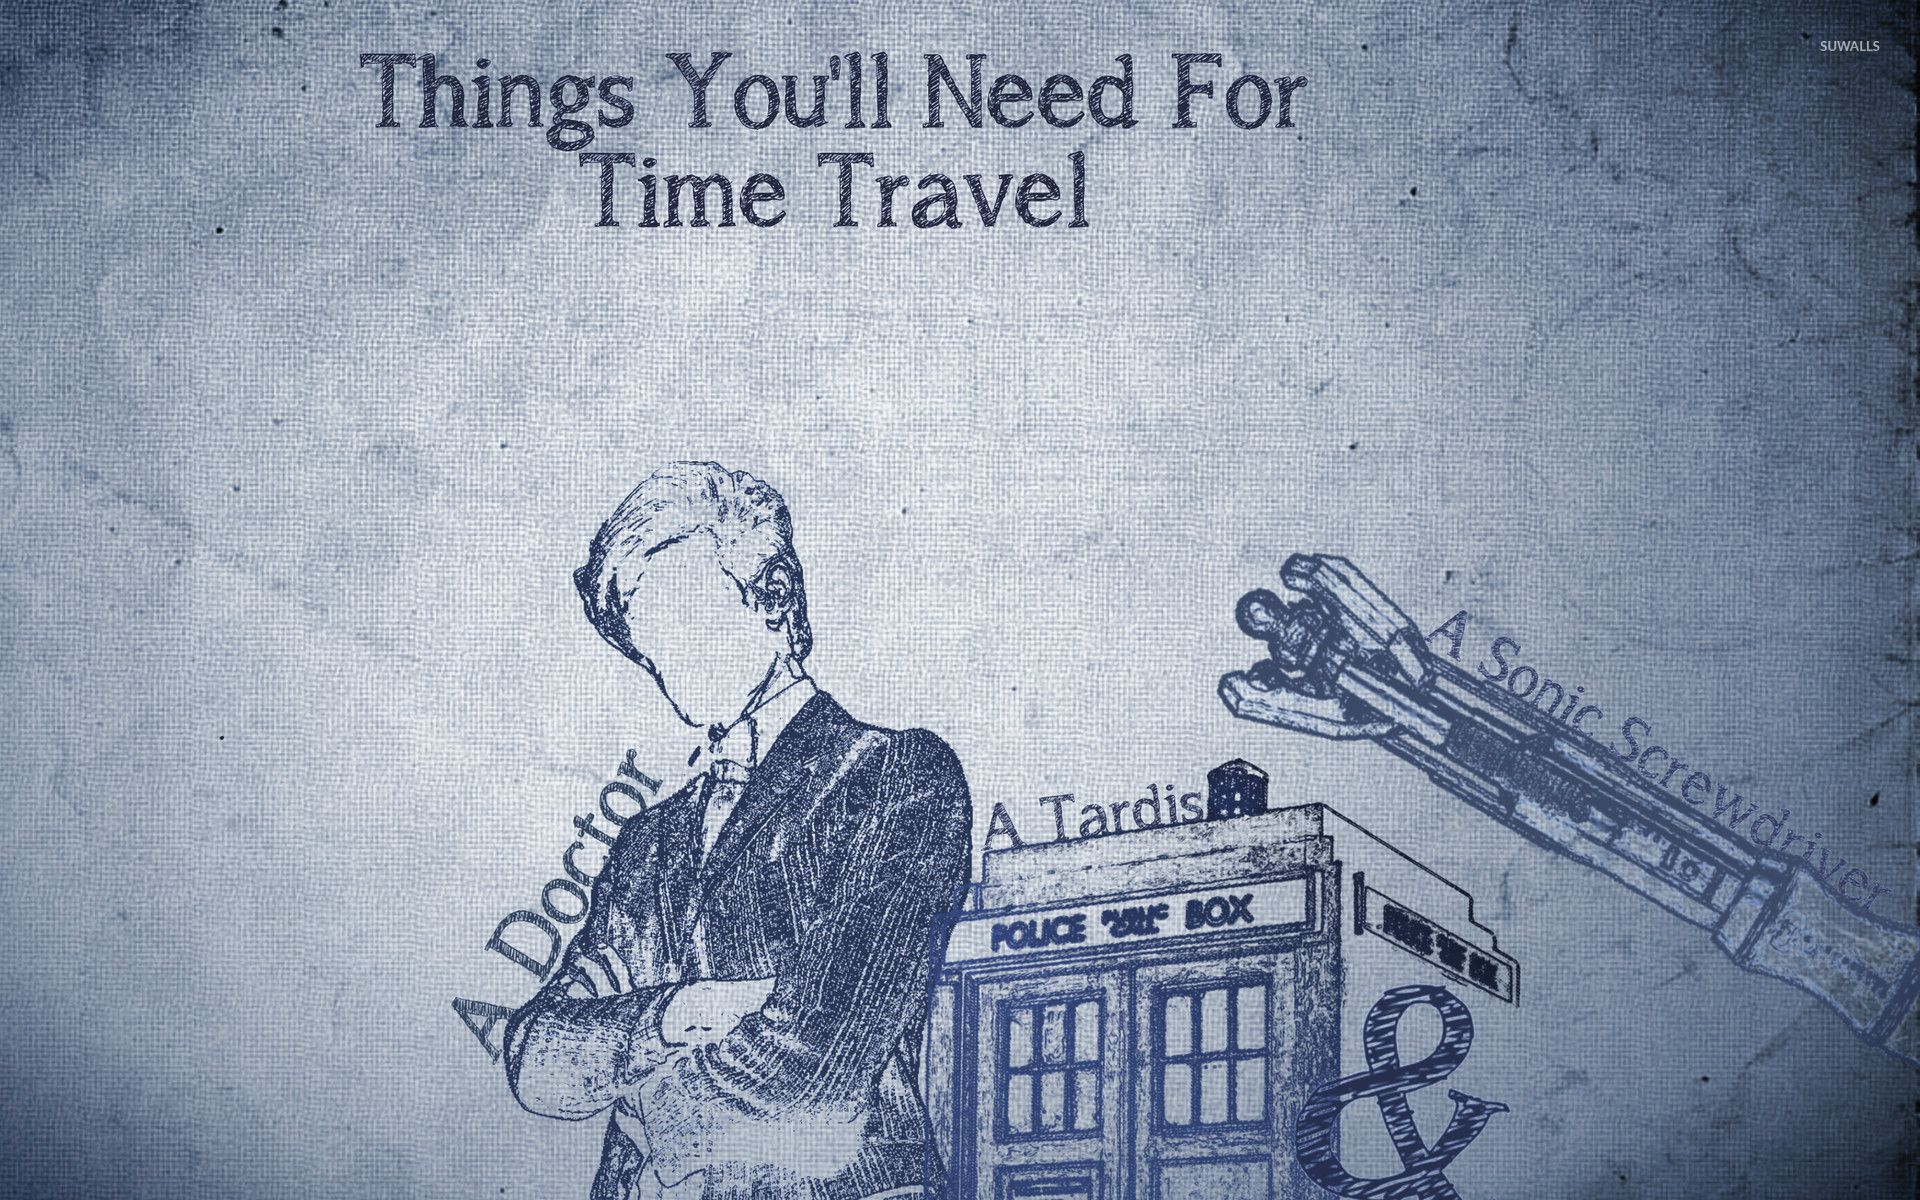 Things you need for time travel wallpaper Digital Art wallpapers